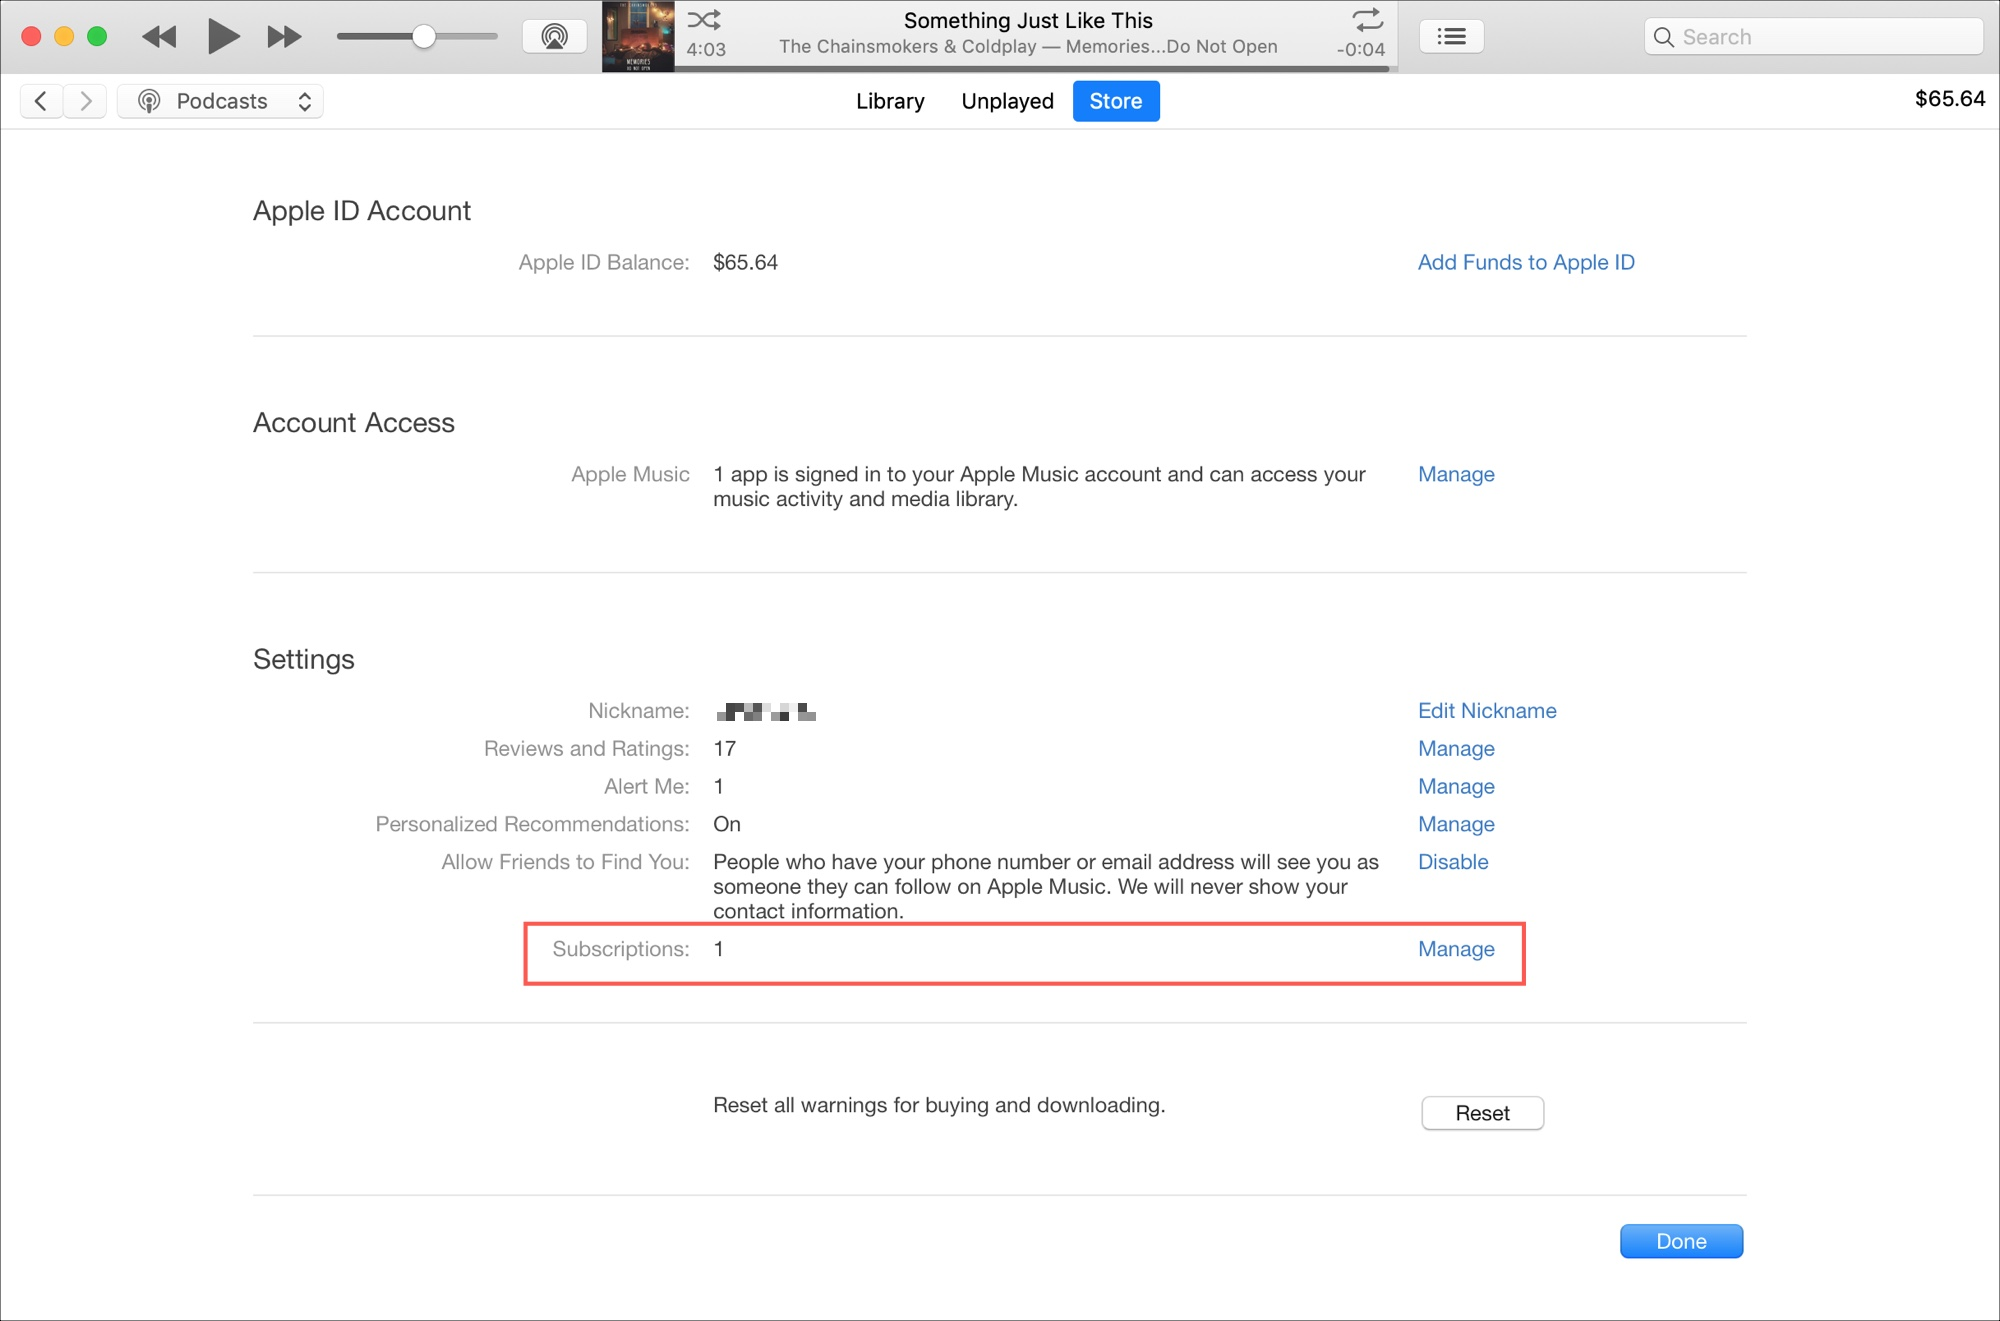 Subscriptions in iTunes on Mac